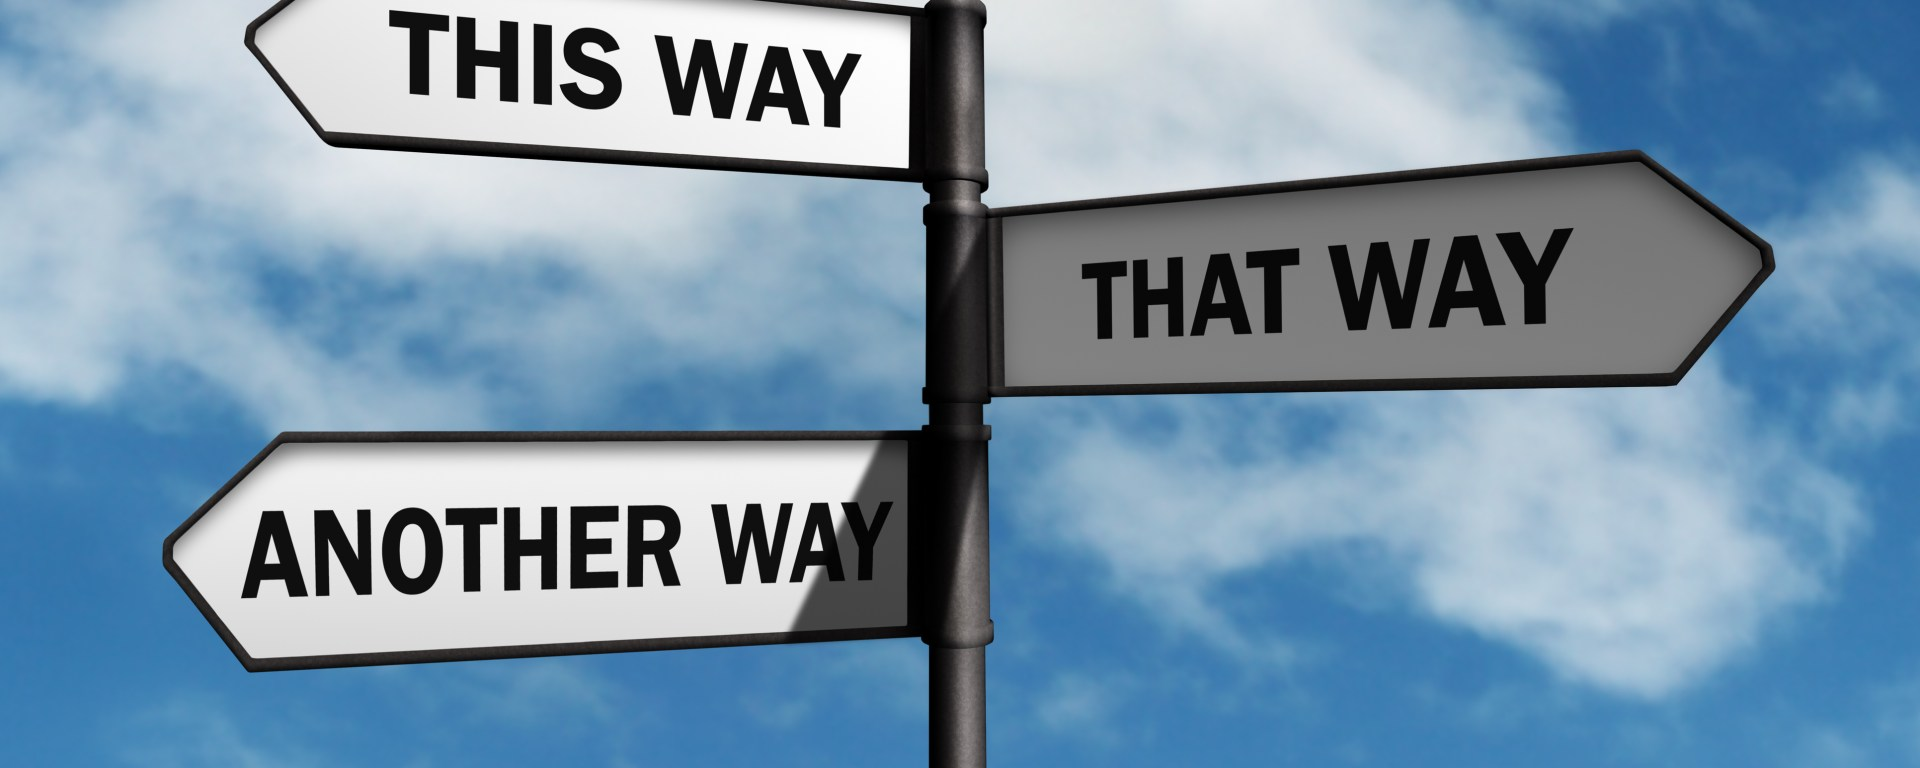 Crossroad signpost saying this way, that way, another way concept for lost, confusion or decisions